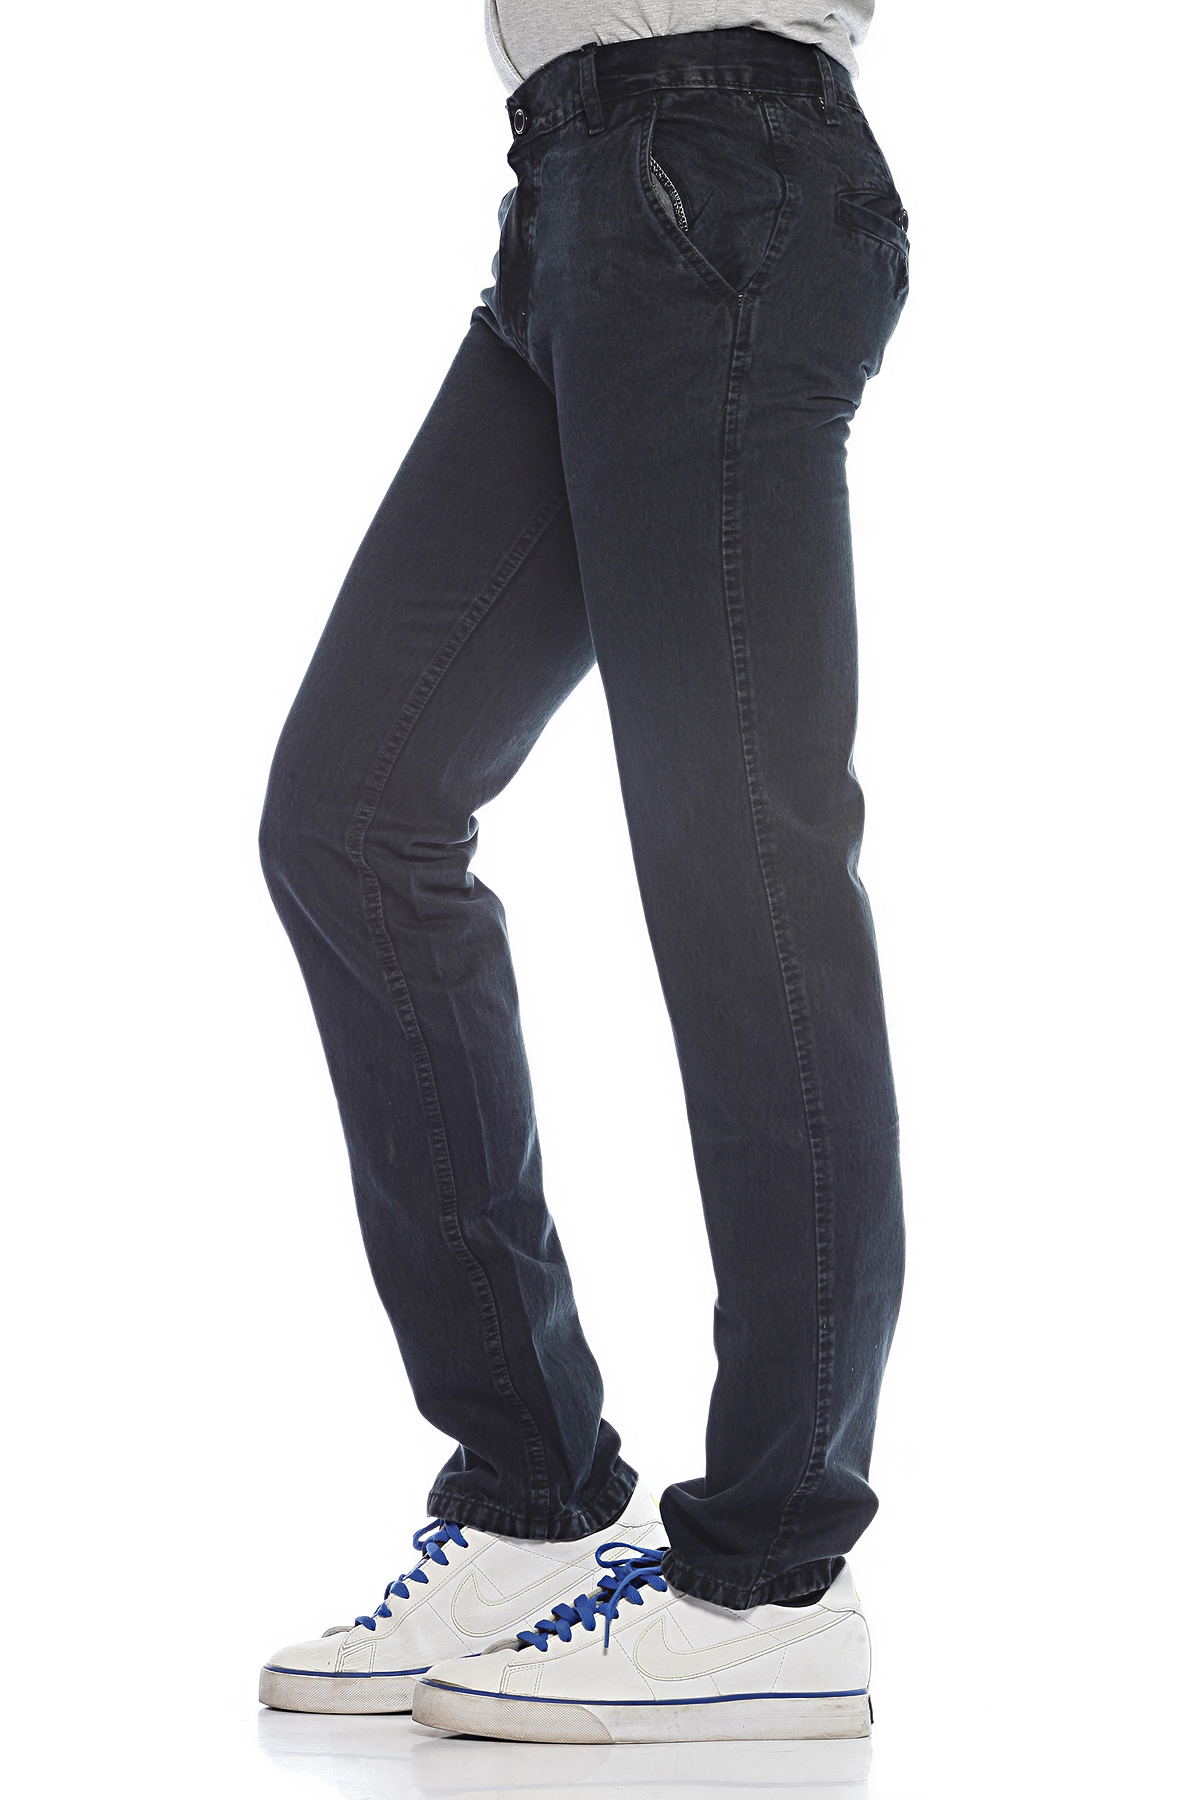 DS Black Cotton Stylish Straight Faded Jeans